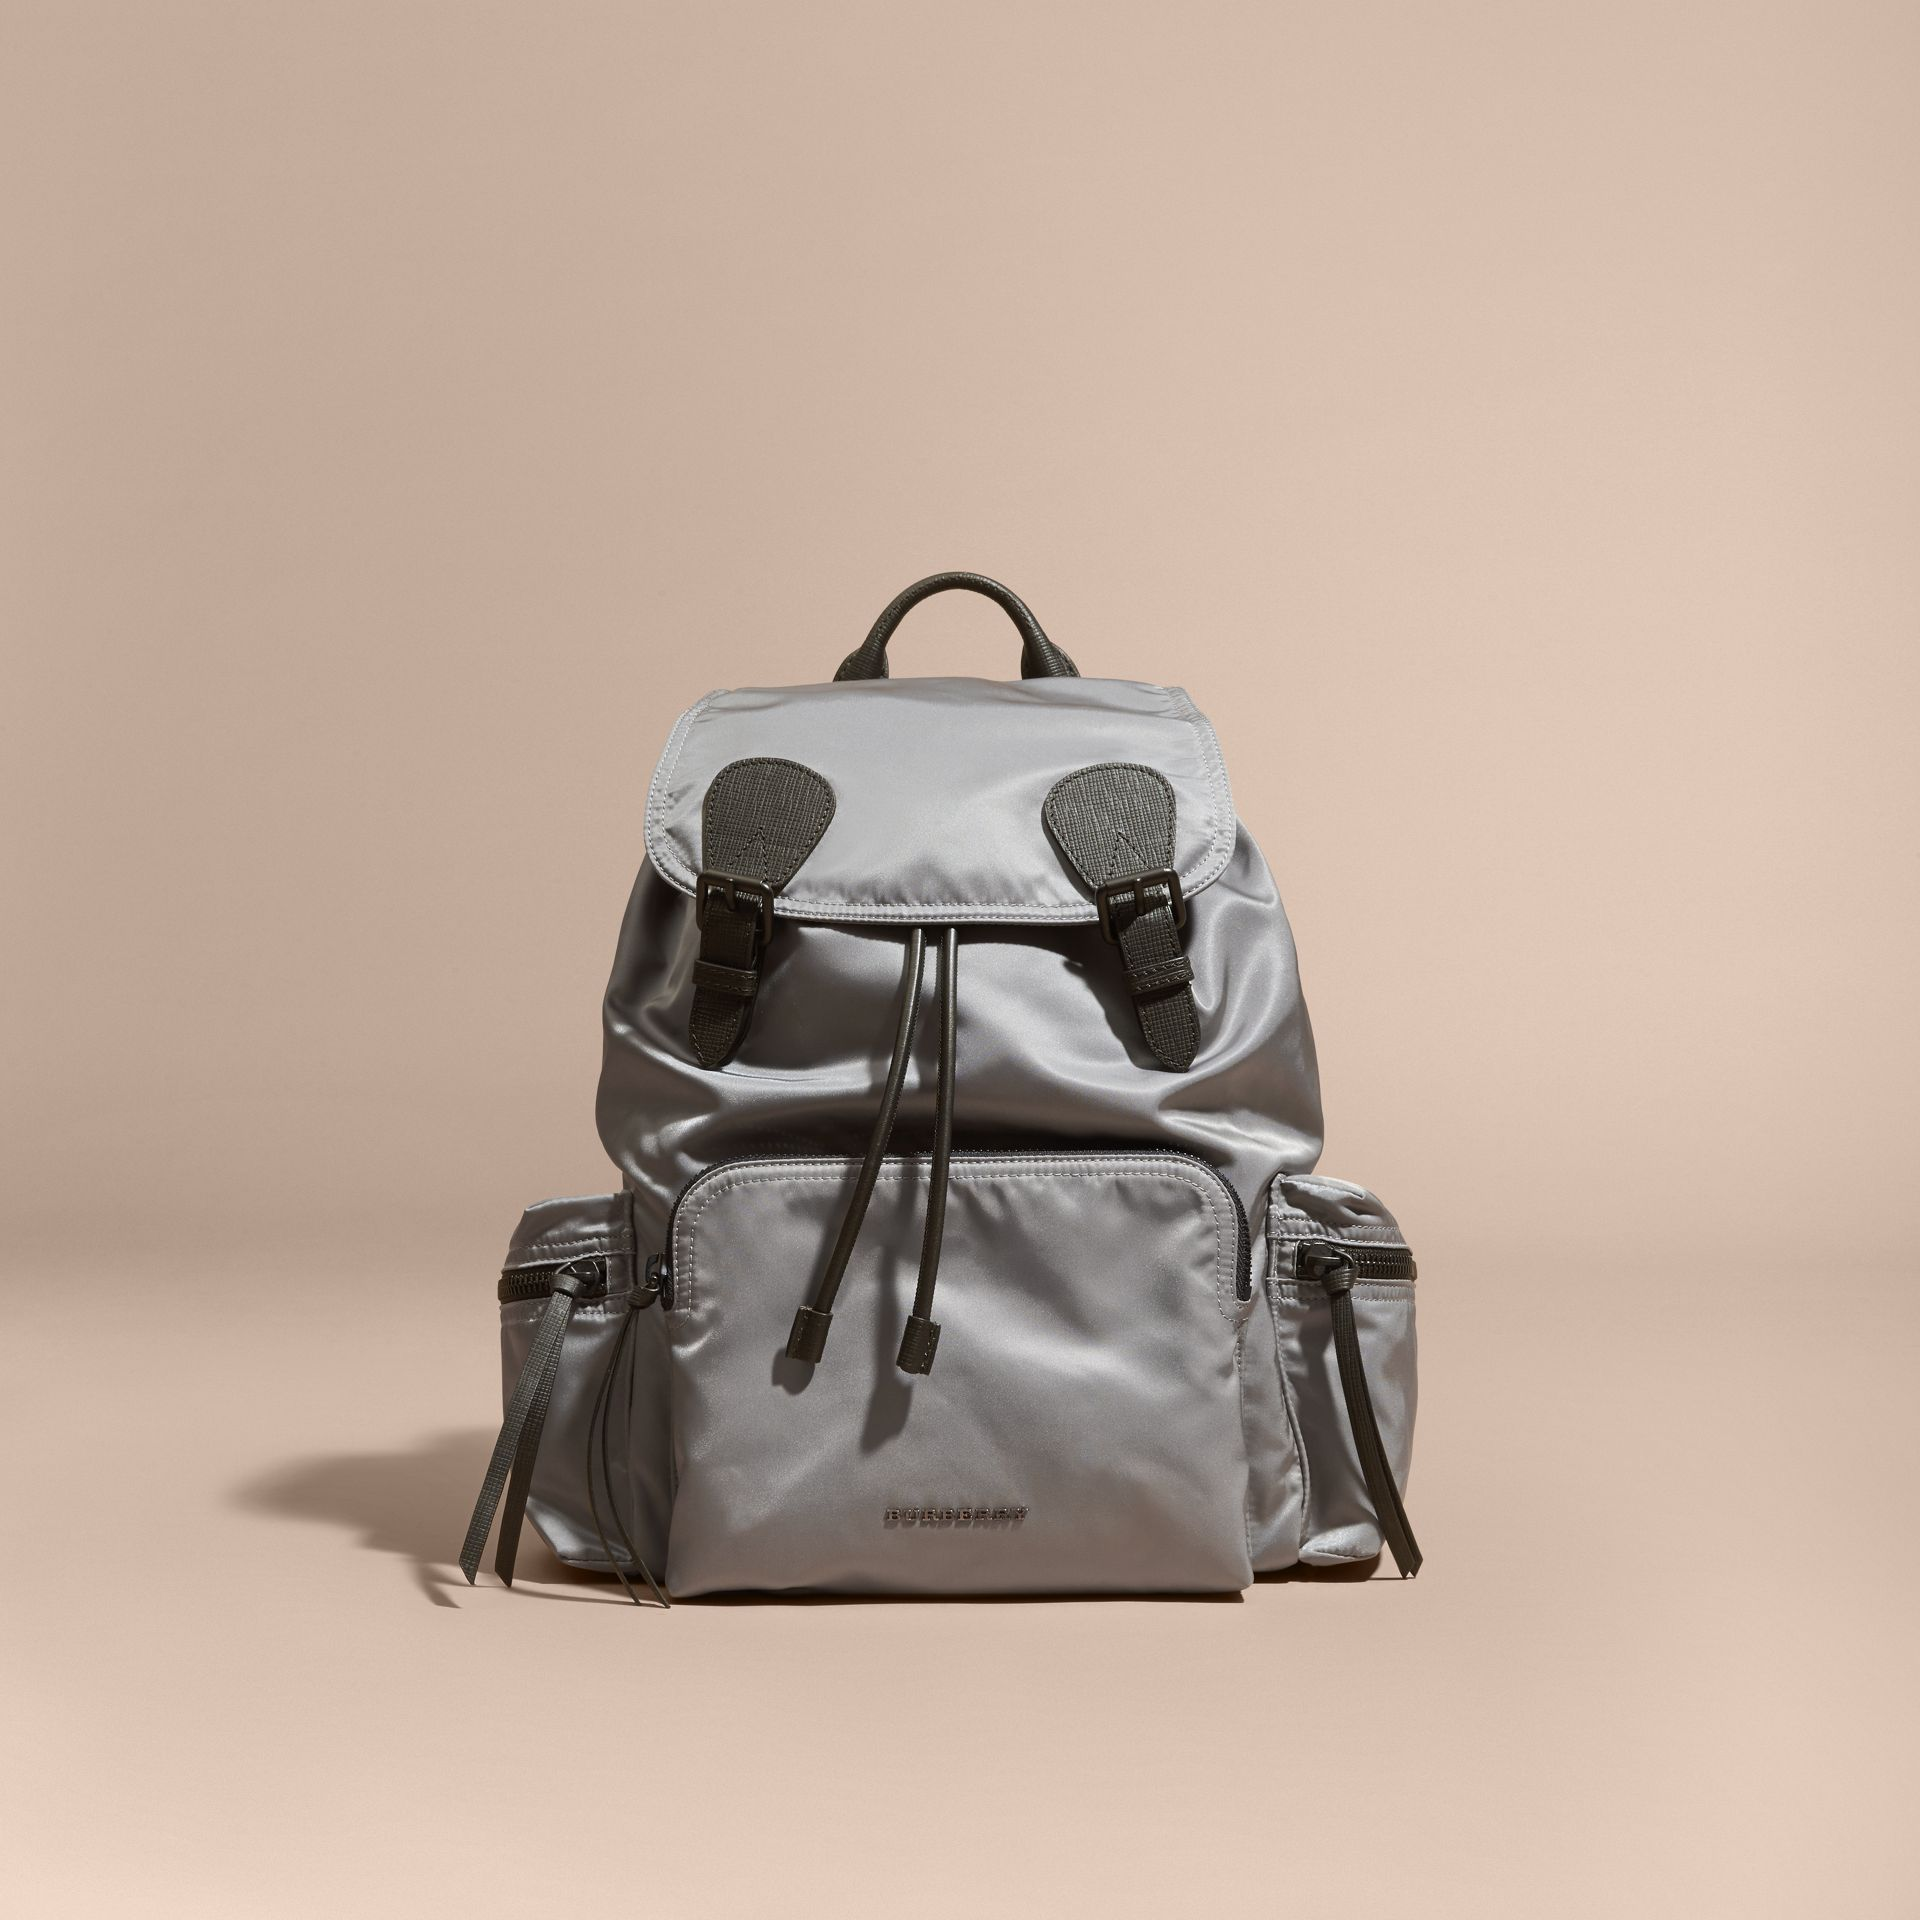 Thistle grey The Large Rucksack in Technical Nylon and Leather Thistle Grey - gallery image 9